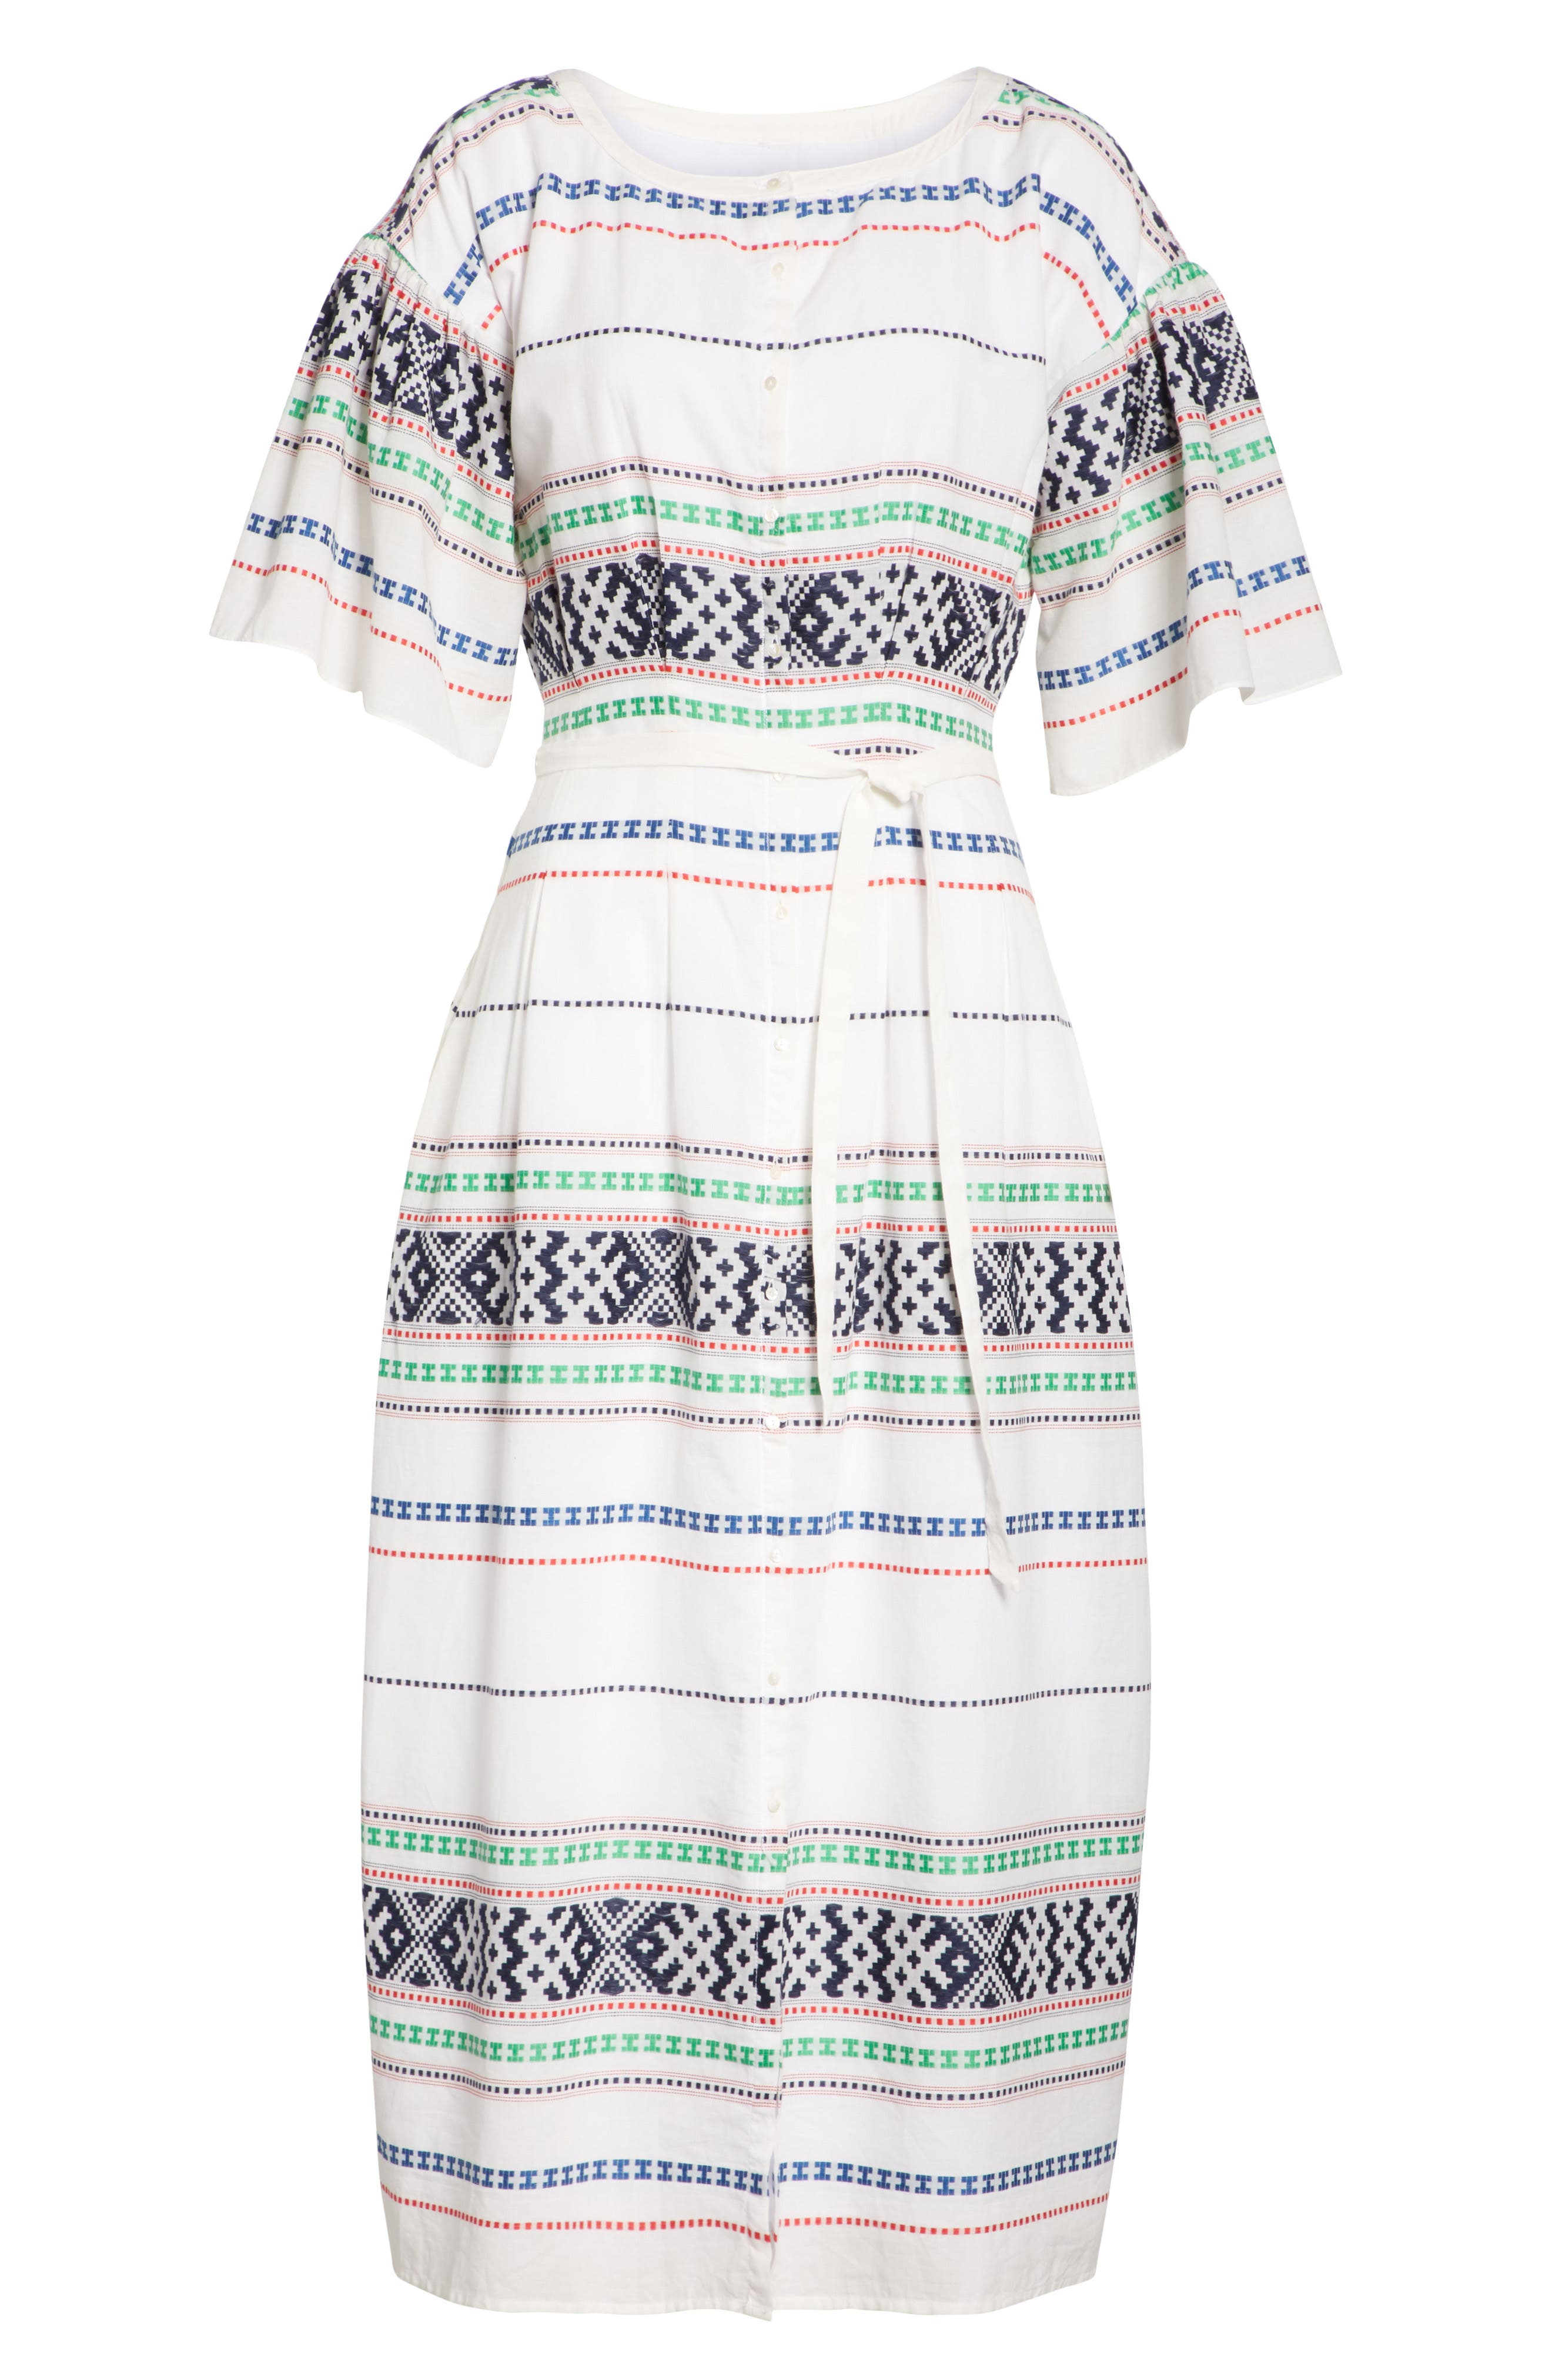 Lilianaly Embroidered Midi Dress,                             Alternate thumbnail 7, color,                             PORCELAIN